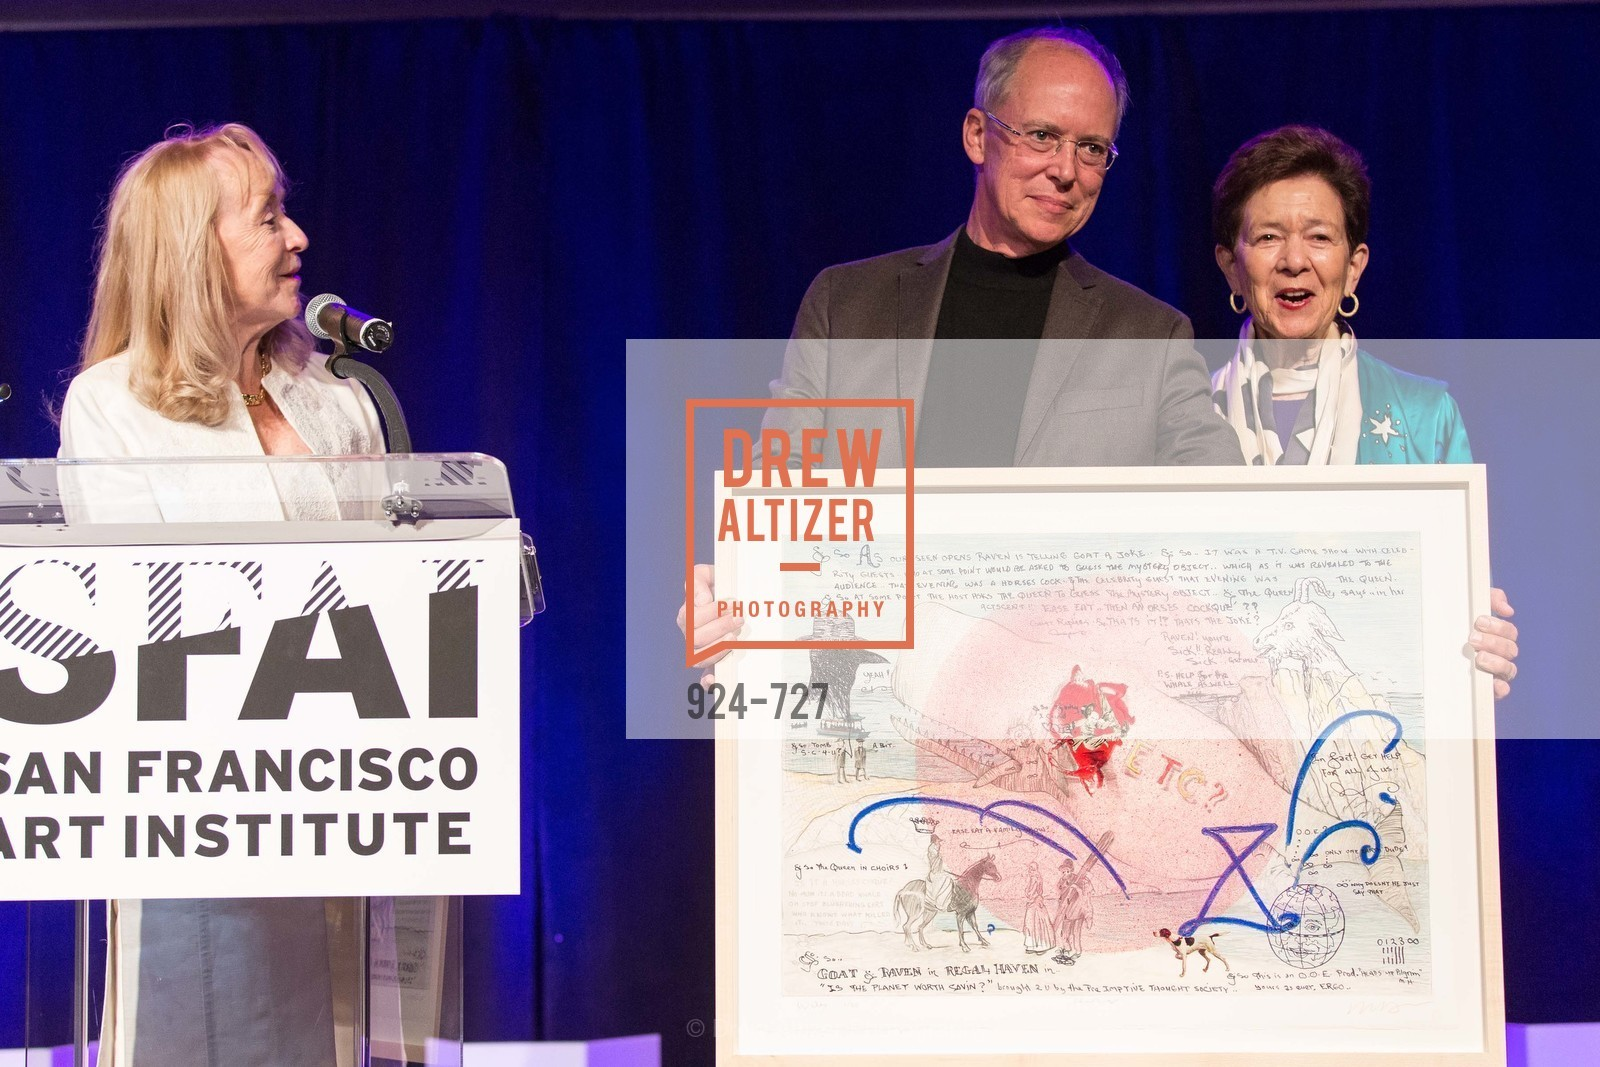 Cynthia Plevin, Charles Desmarais, Cissie Swig, SAN FRANCISCO ART INSTITUTE Gala Honoring Art Visionary and Advocate ROSELYNE CHROMAN SWIG, US, May 13th, 2015,Drew Altizer, Drew Altizer Photography, full-service agency, private events, San Francisco photographer, photographer california